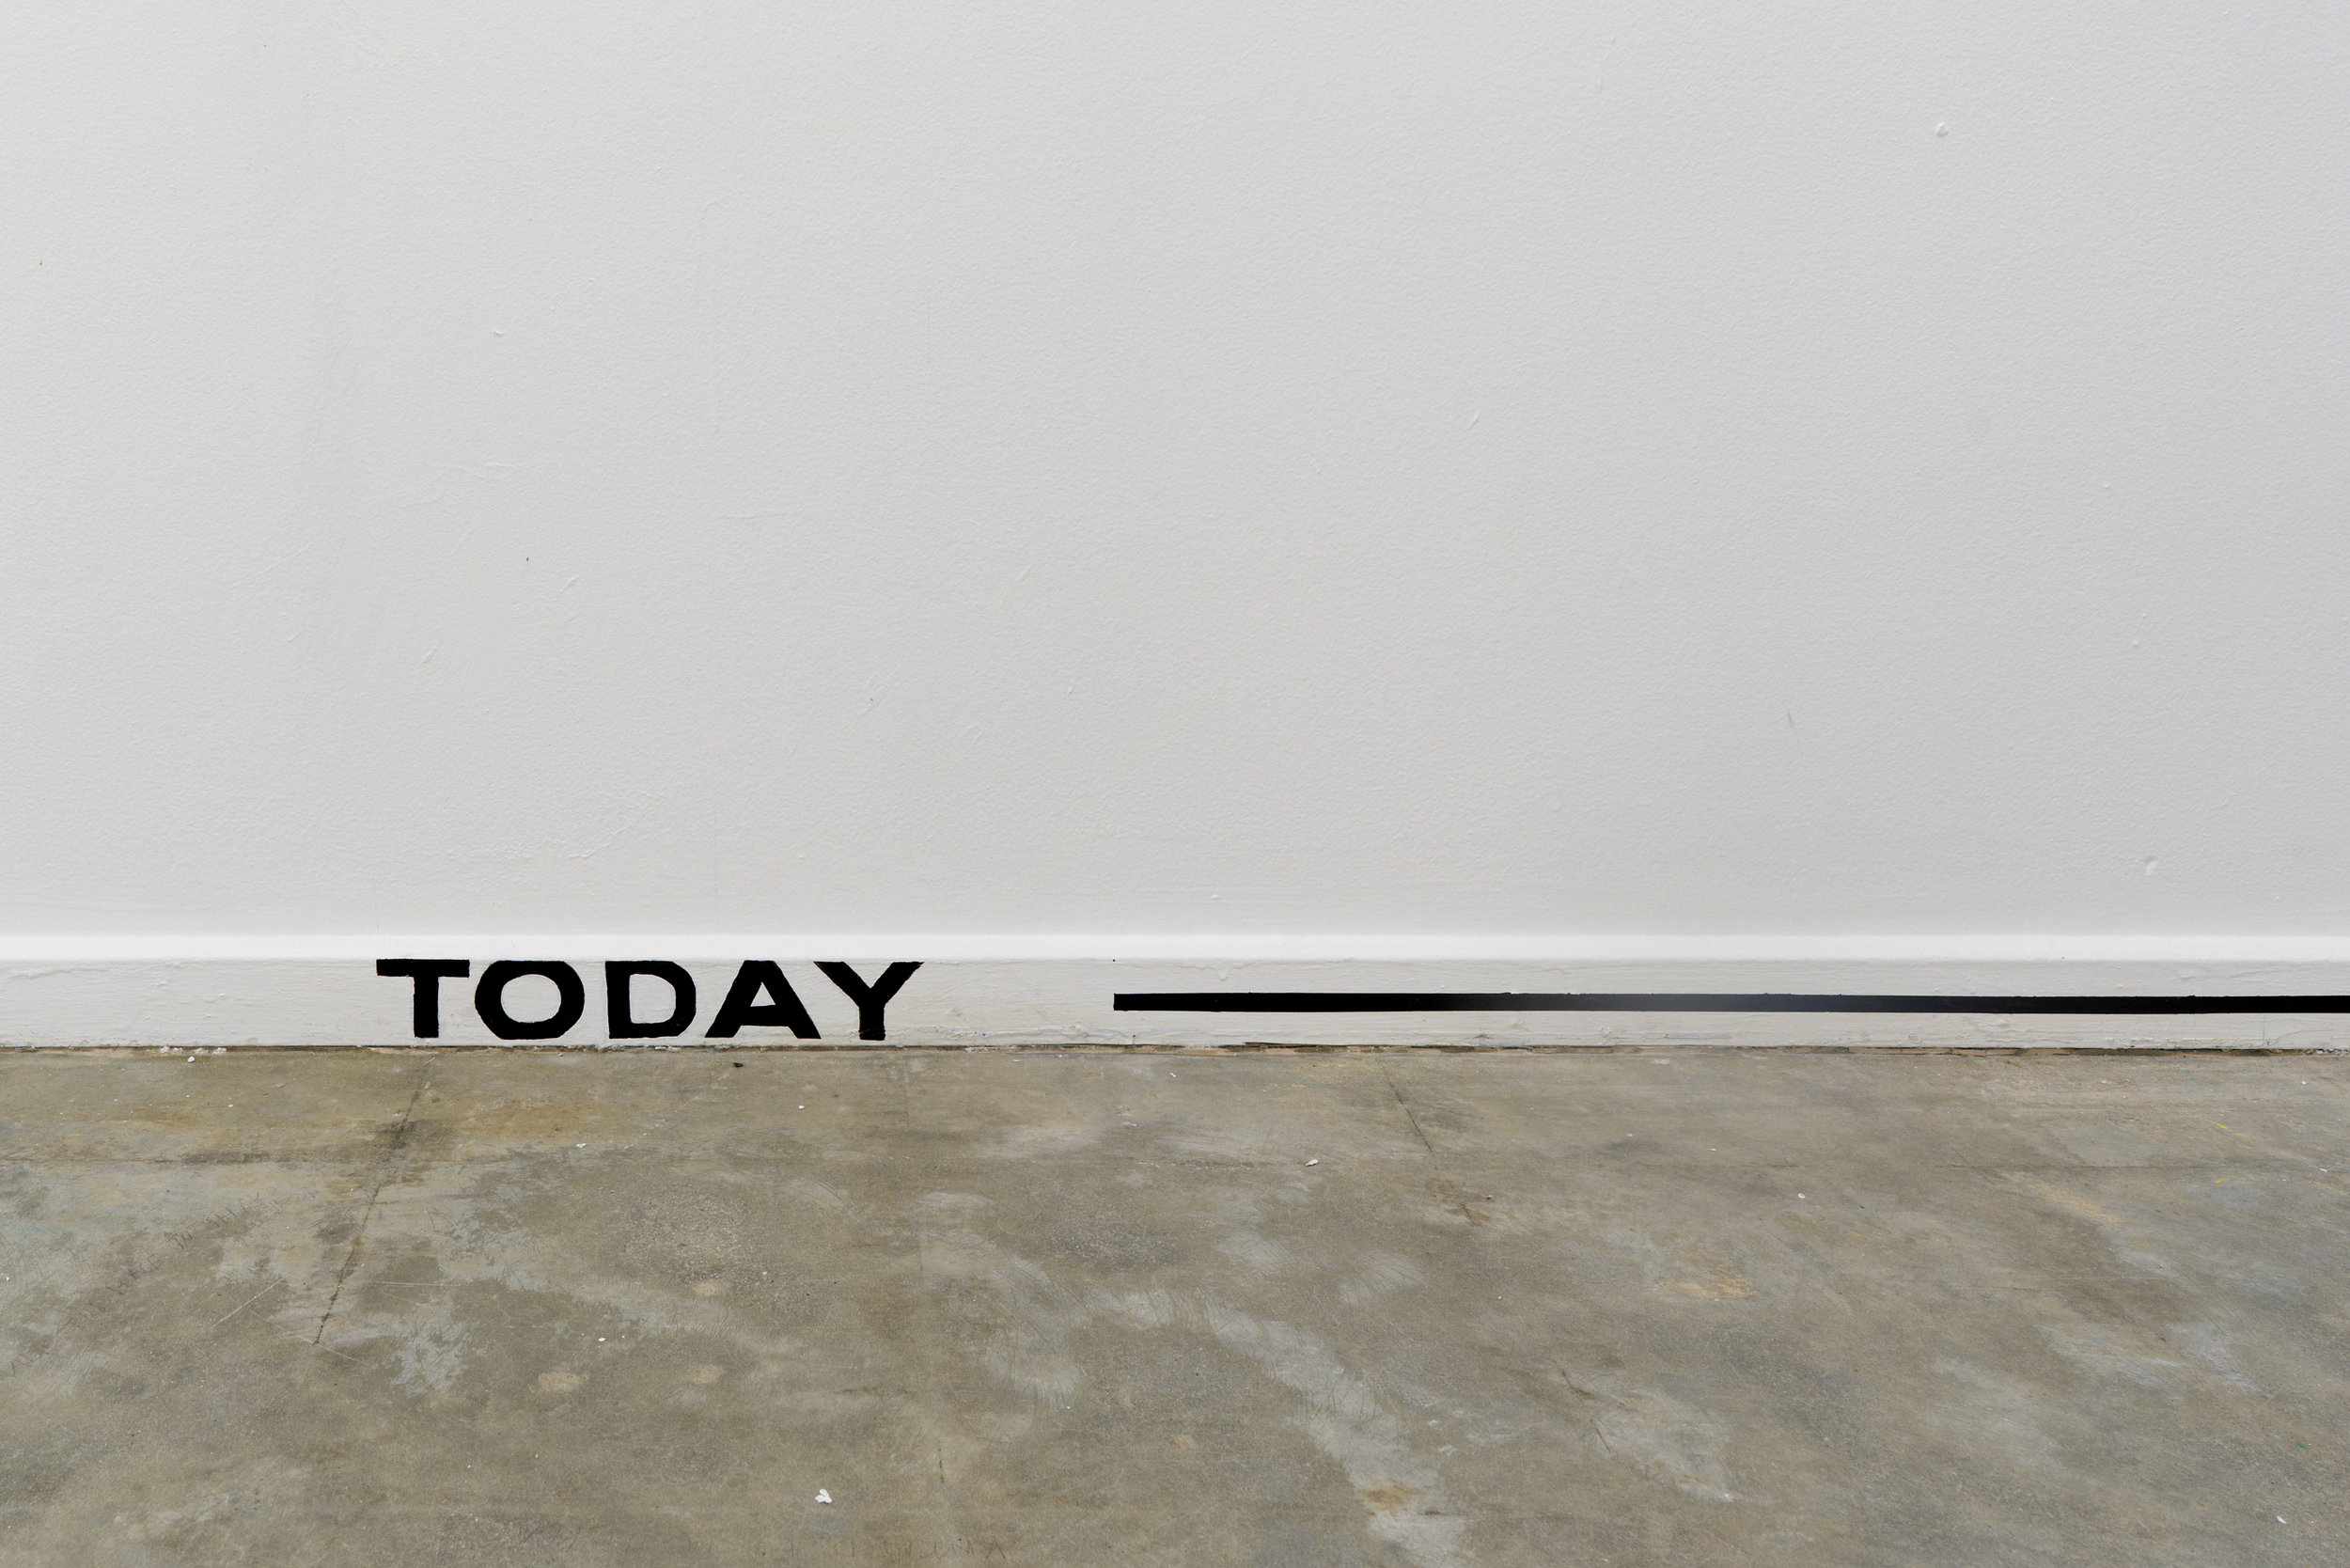 WE ARE GATHERED HERE        TODAY , black painted text and line on the gallery skirting boards, in  Who speaks for a community?  curated by Bella Hone-Saunders, Sister Gallery, 2017.